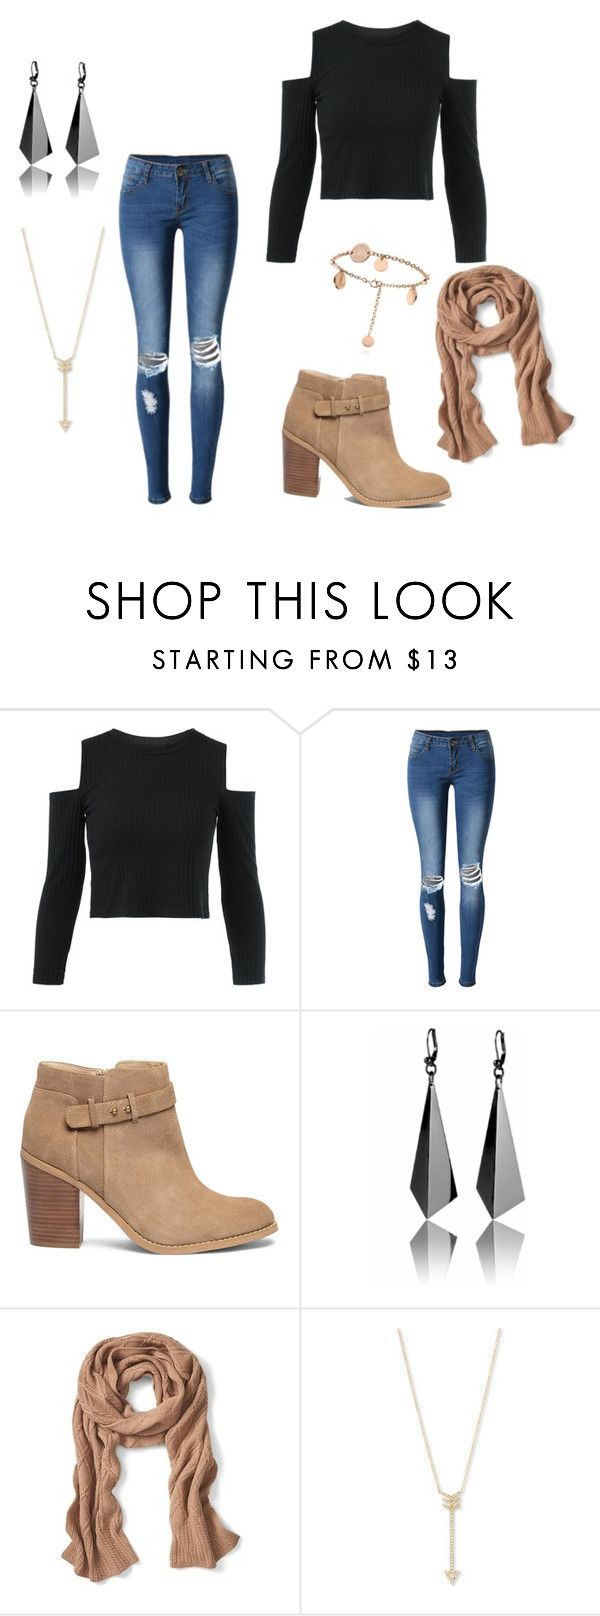 """46."" by nuffy-the-alpaca ❤ liked on Polyvore featuring WithChic, Sole Society, Banana Republic and EF Collection"